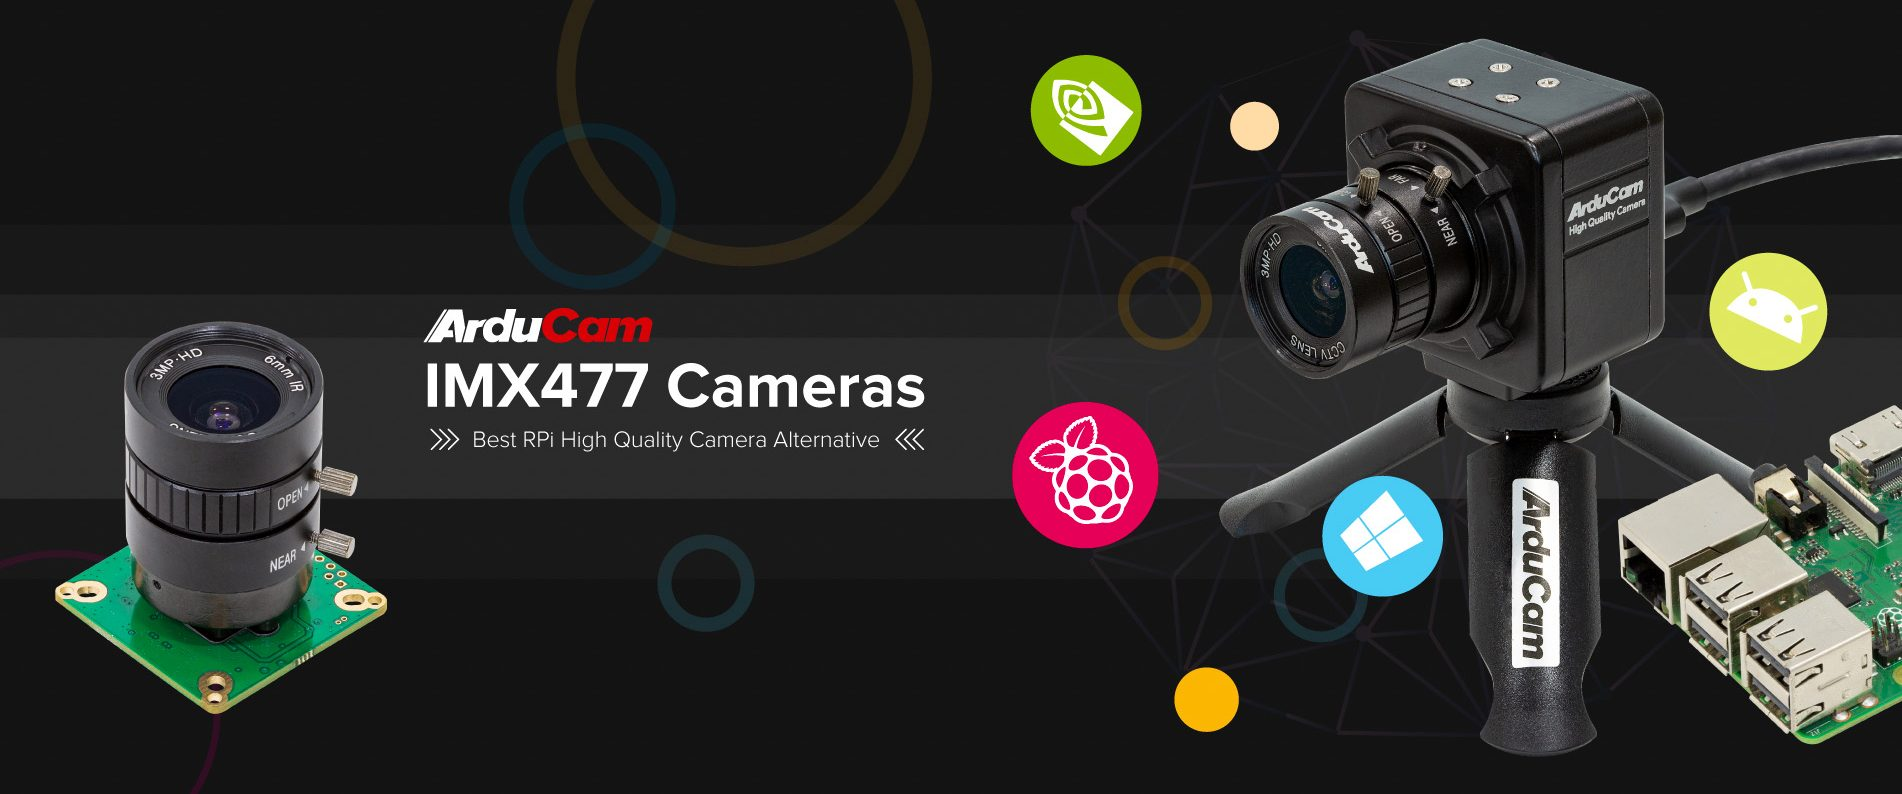 arducam high quality camera raspberry pi 12mp imx477 homepage banner 1